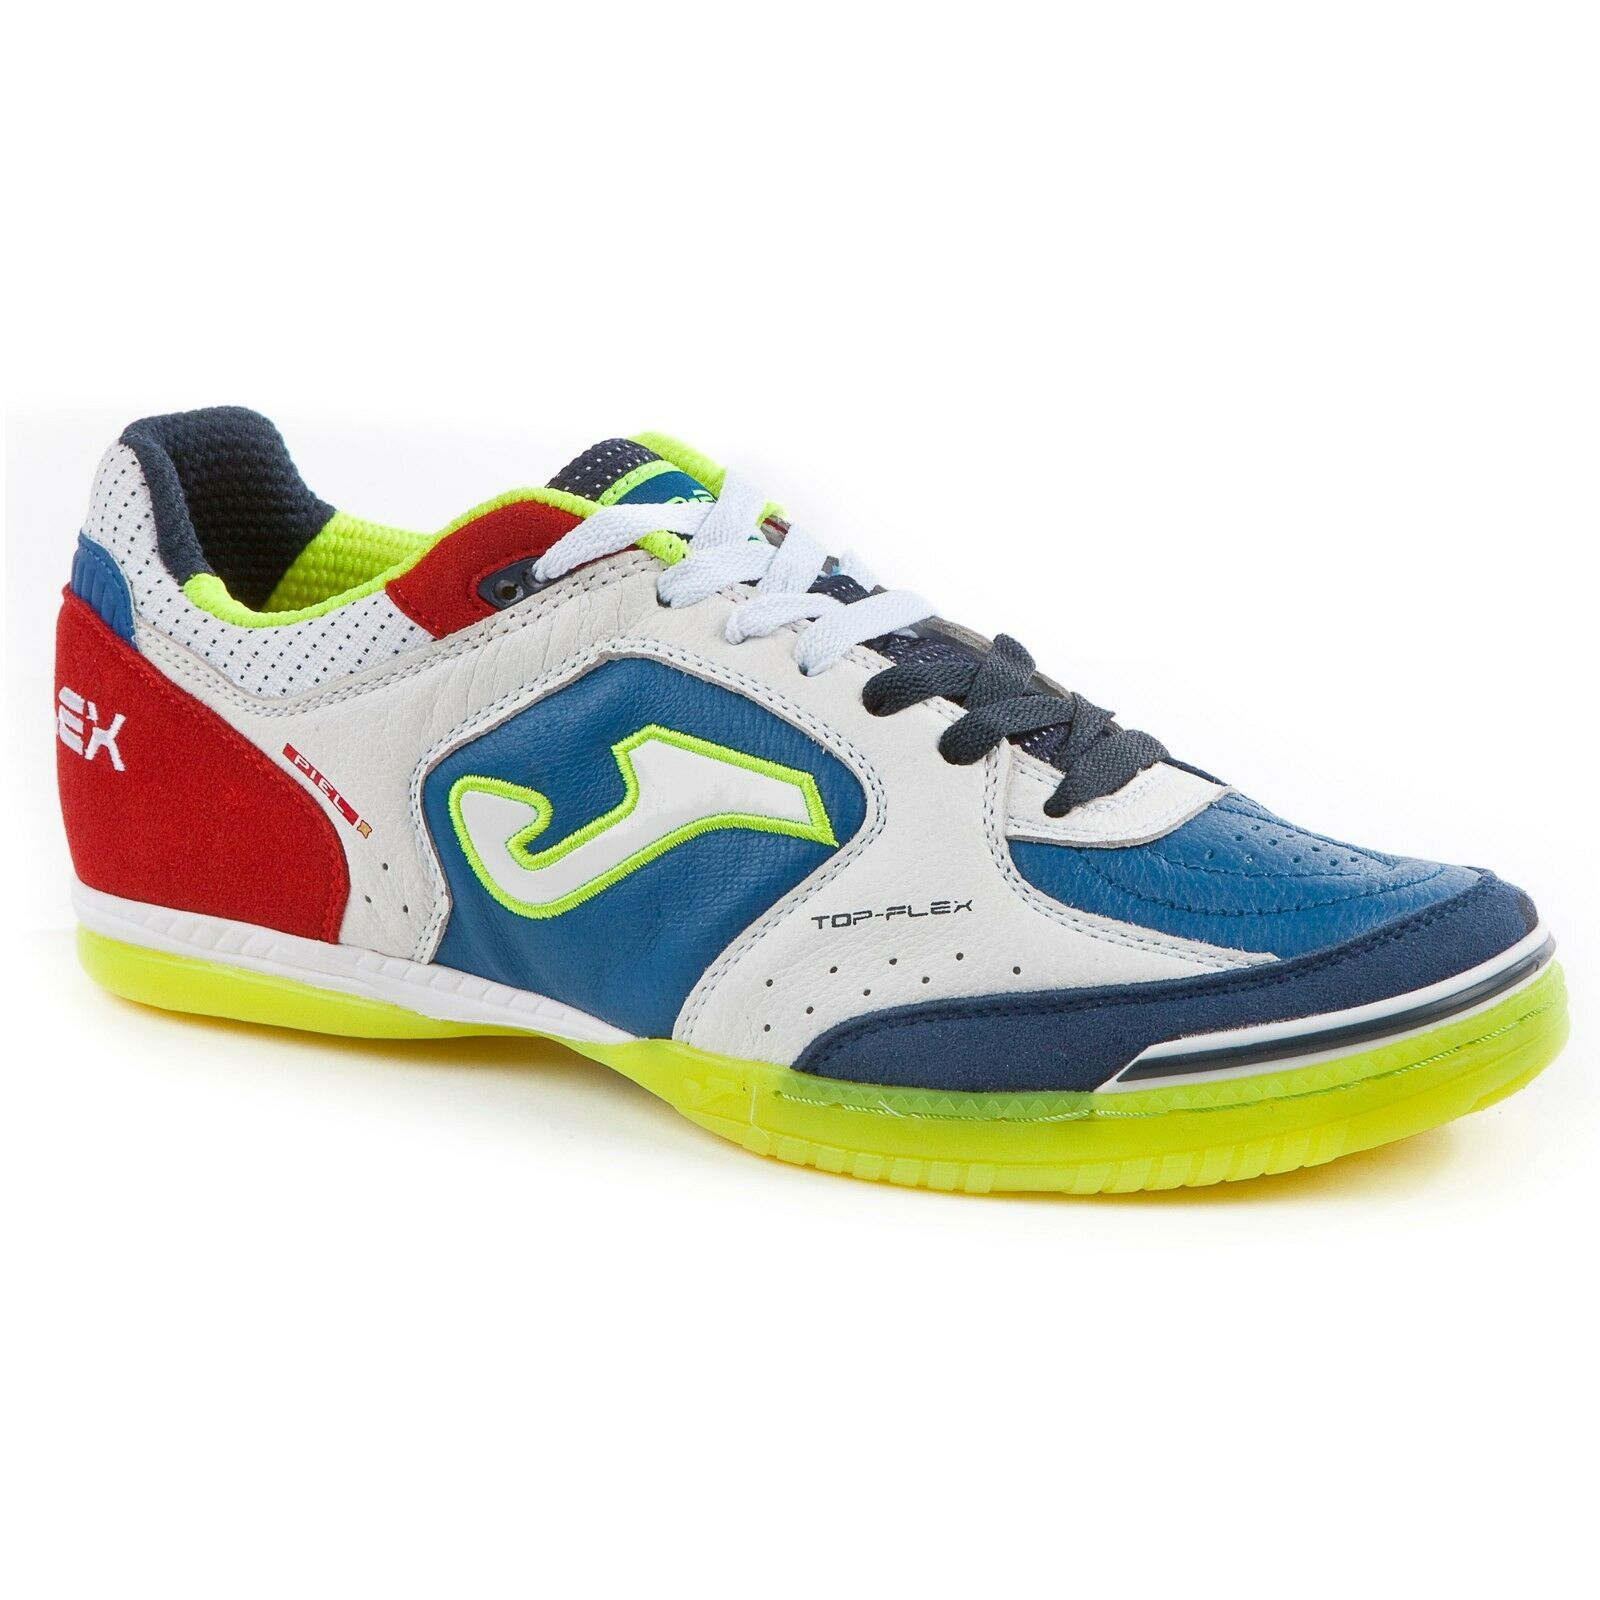 Scarpe calcio a 5 JOMA Top Flex Flex Flex indoor 716 n. 44 0a98d6